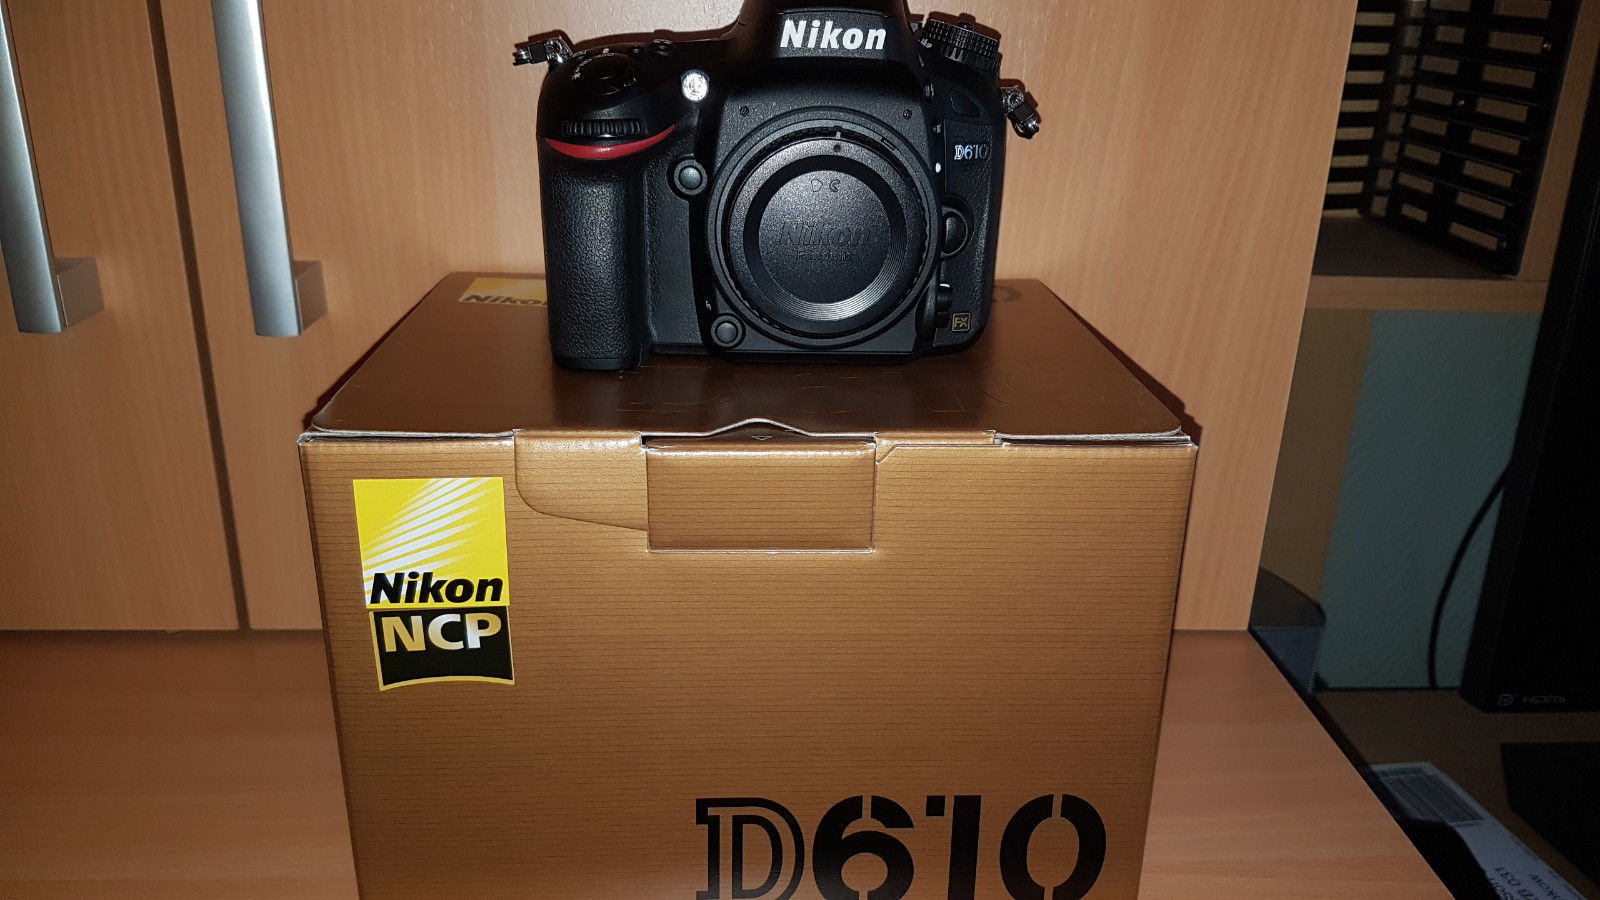 Nikon D D610 24.3 MP SLR-Digitalkamera - Schwarz